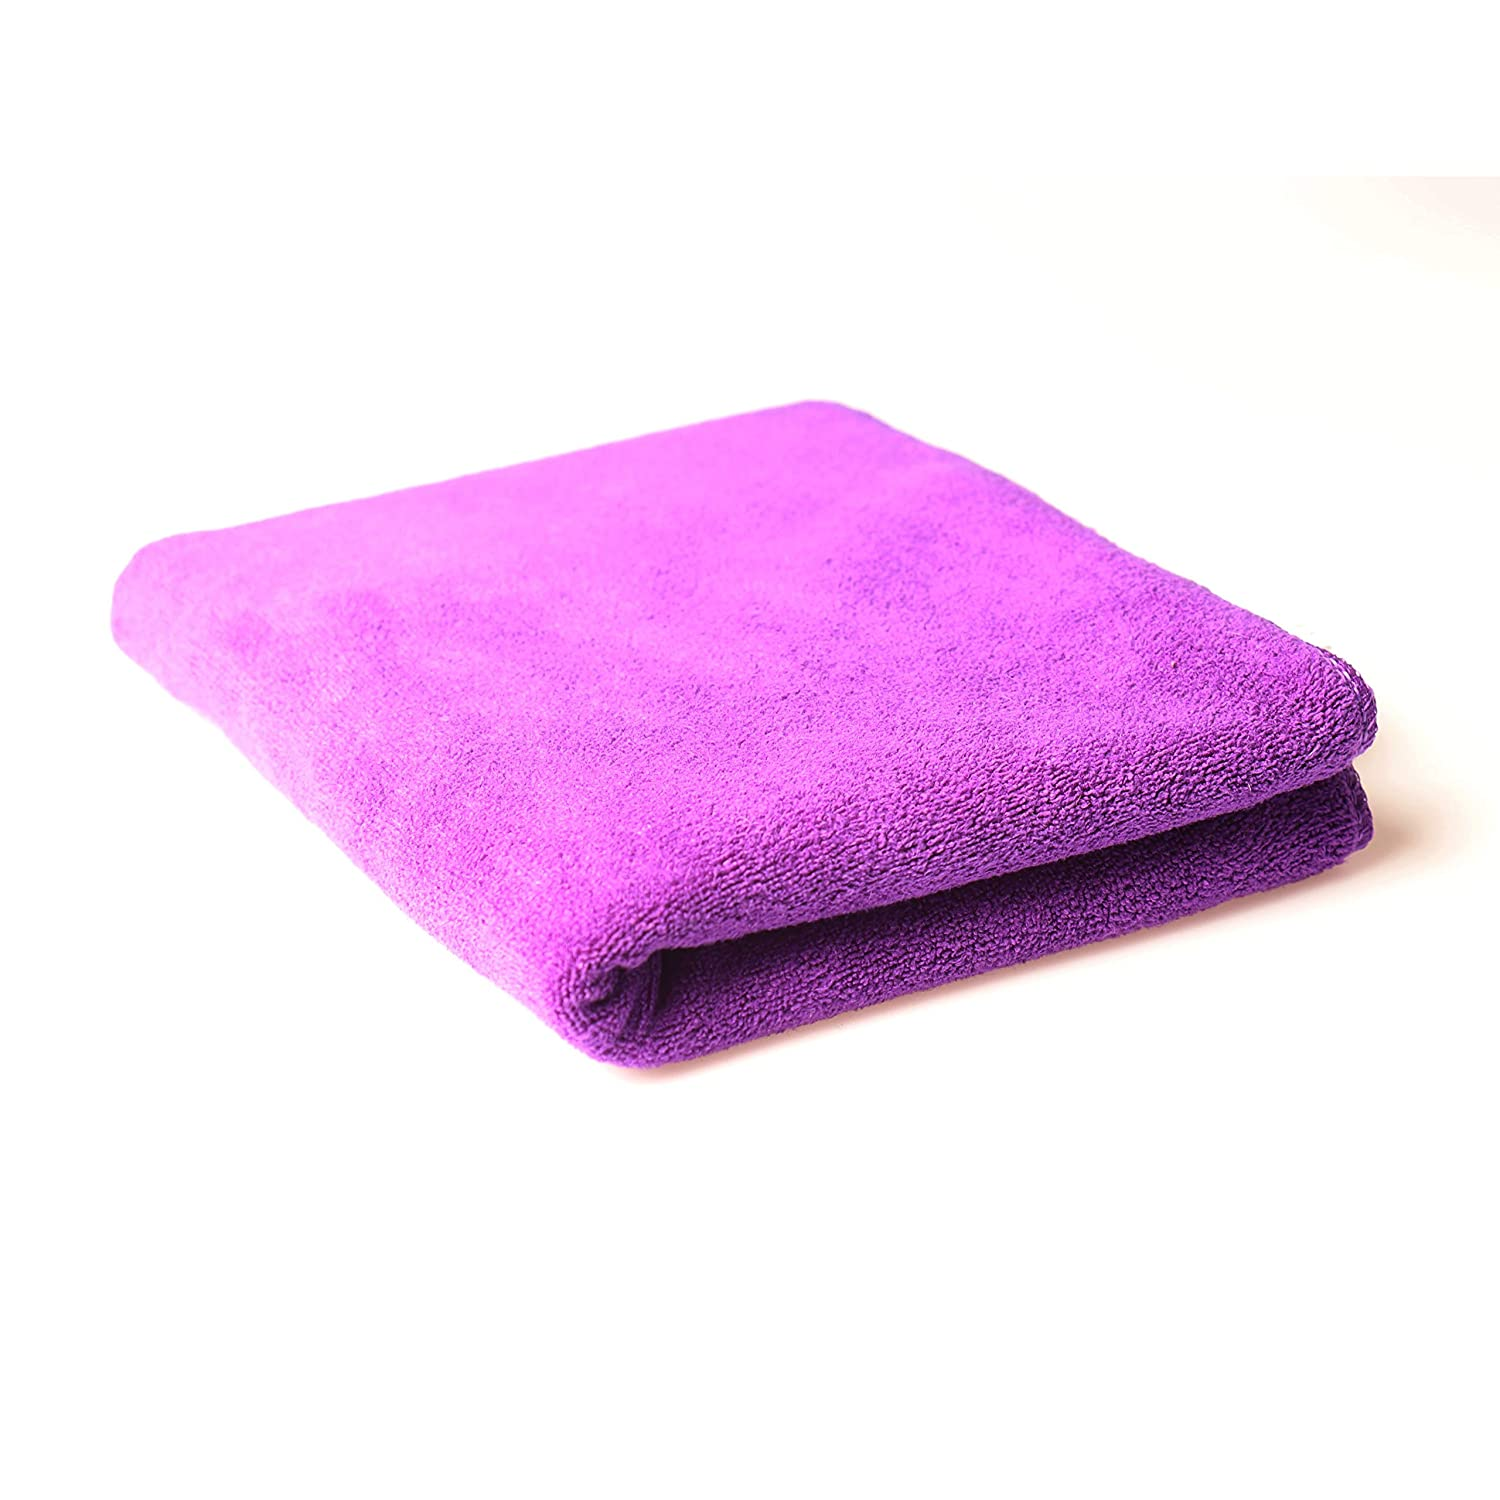 "Nimoco Composite Fibre Towels, Multi Purpose Fast Drying Travel Gym Towels, Hair Drying Towel, Soft, Super Absorbent and Fast Drying, No Fading, Size 29""x 13"",Violet"